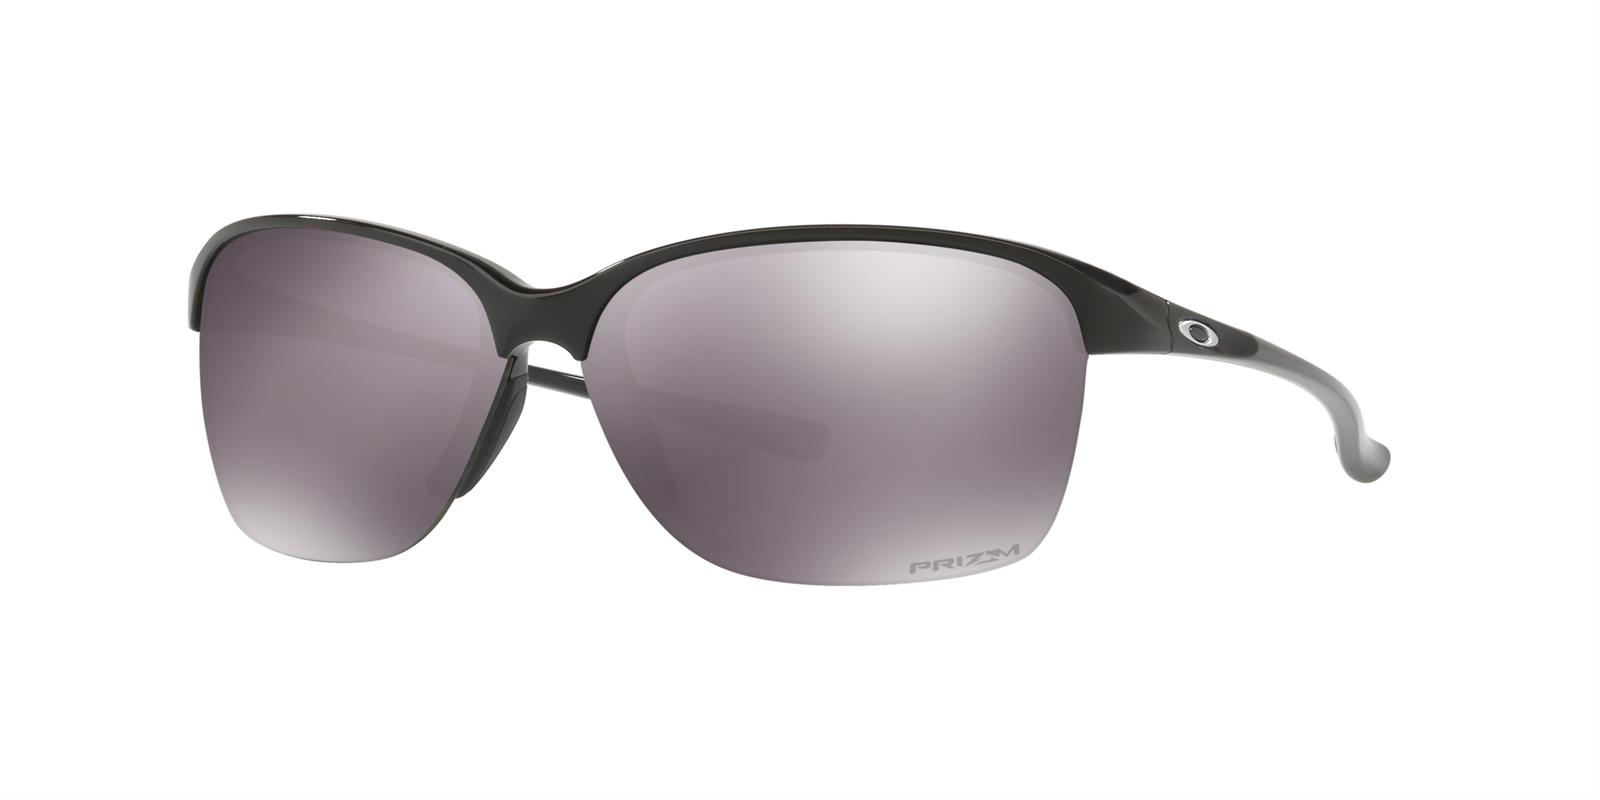 11b8e71095 Oakley Unstoppable Prizm Sunglasses OO9191-1665 - Free Shipping on Orders  Over  99 at Summit Racing